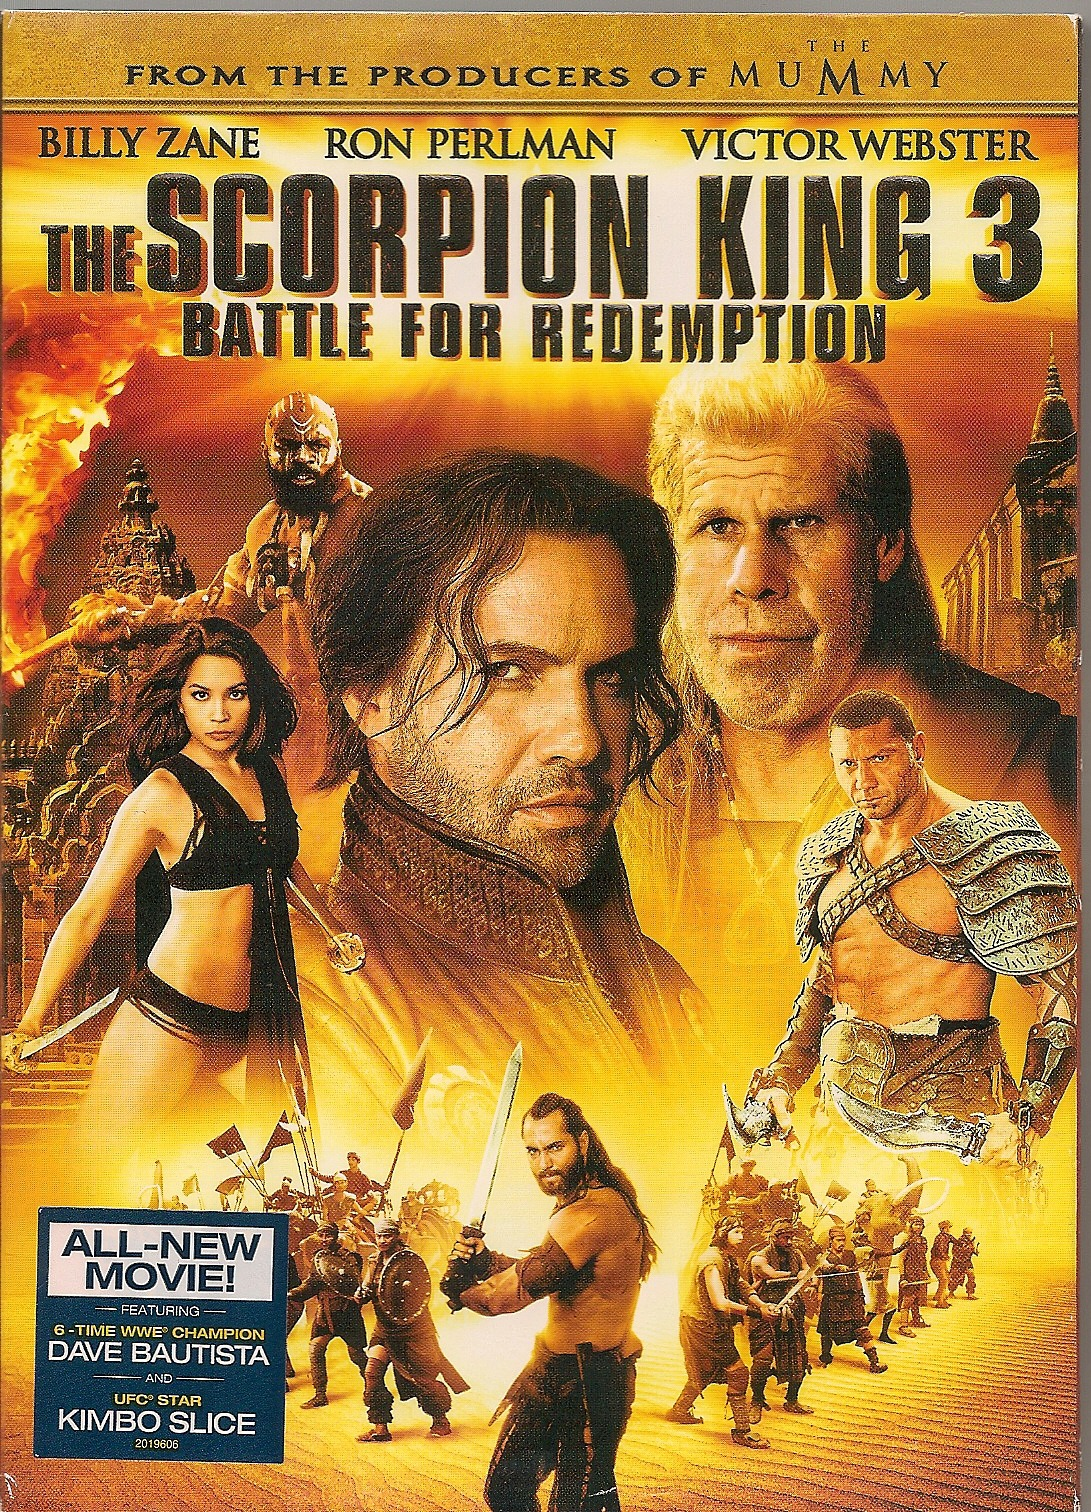 badmovieihave:  Bad movie I have. The Scorpion King 3 Battle for Redemption 2012